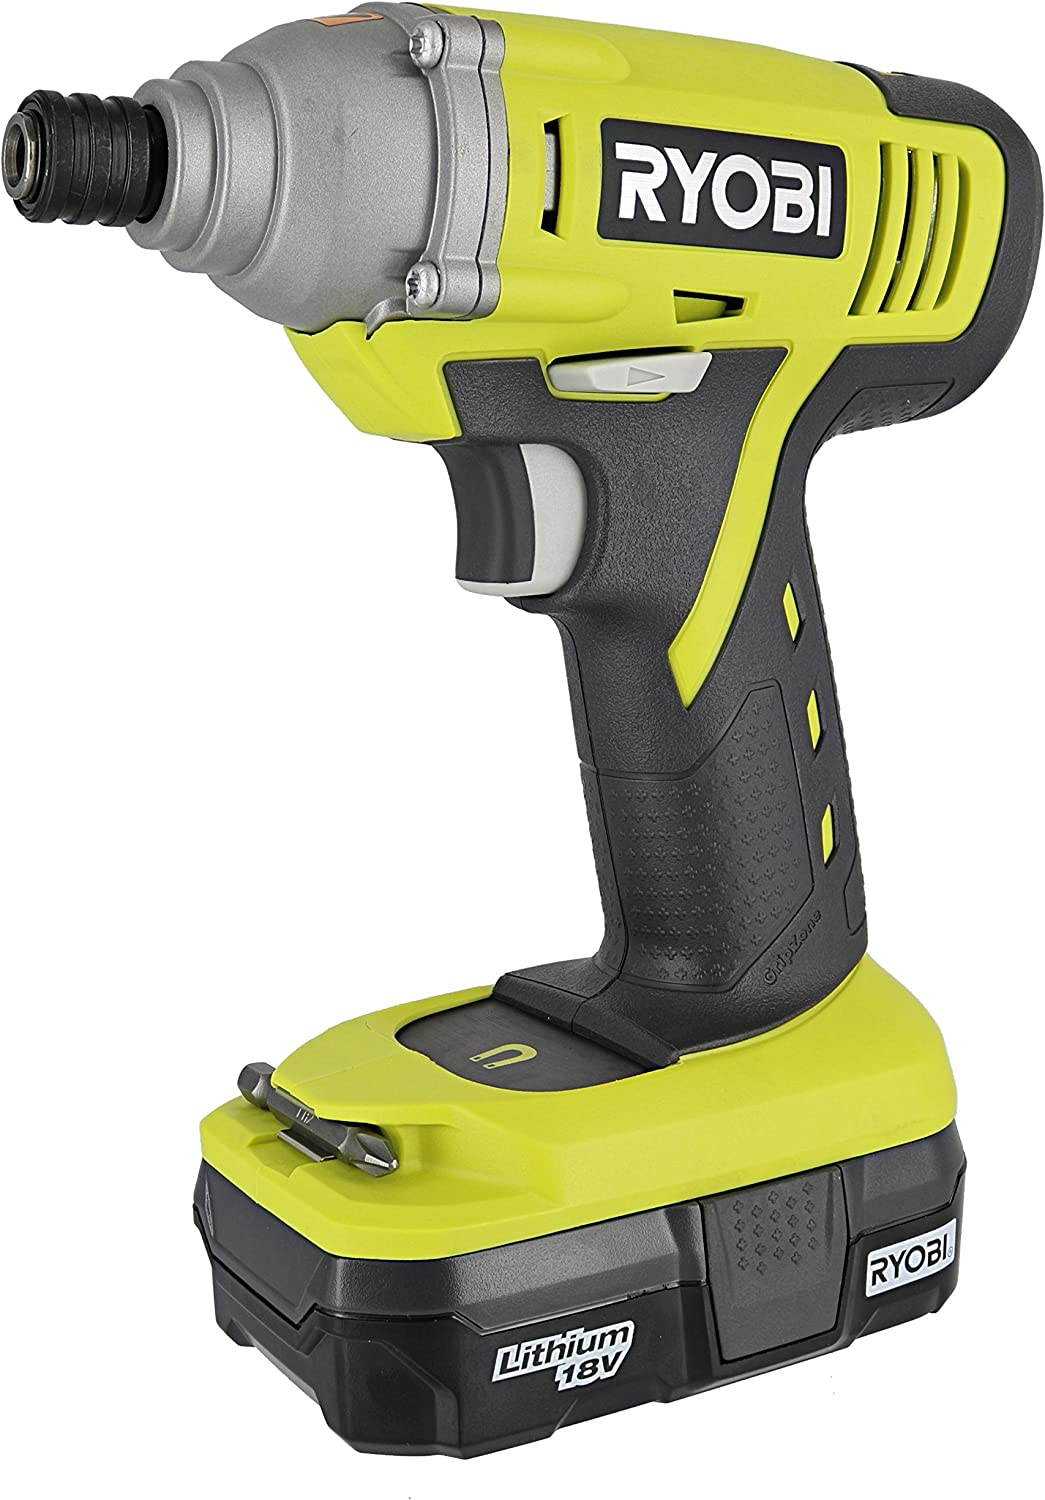 Ryobi P1870 18V Lithium Ion Battery Powered 1 4 Inch 1,500 Inch Pound Impact Driver Kit P234 Impact Driver, P102 18V Battery and P119 Charger Included